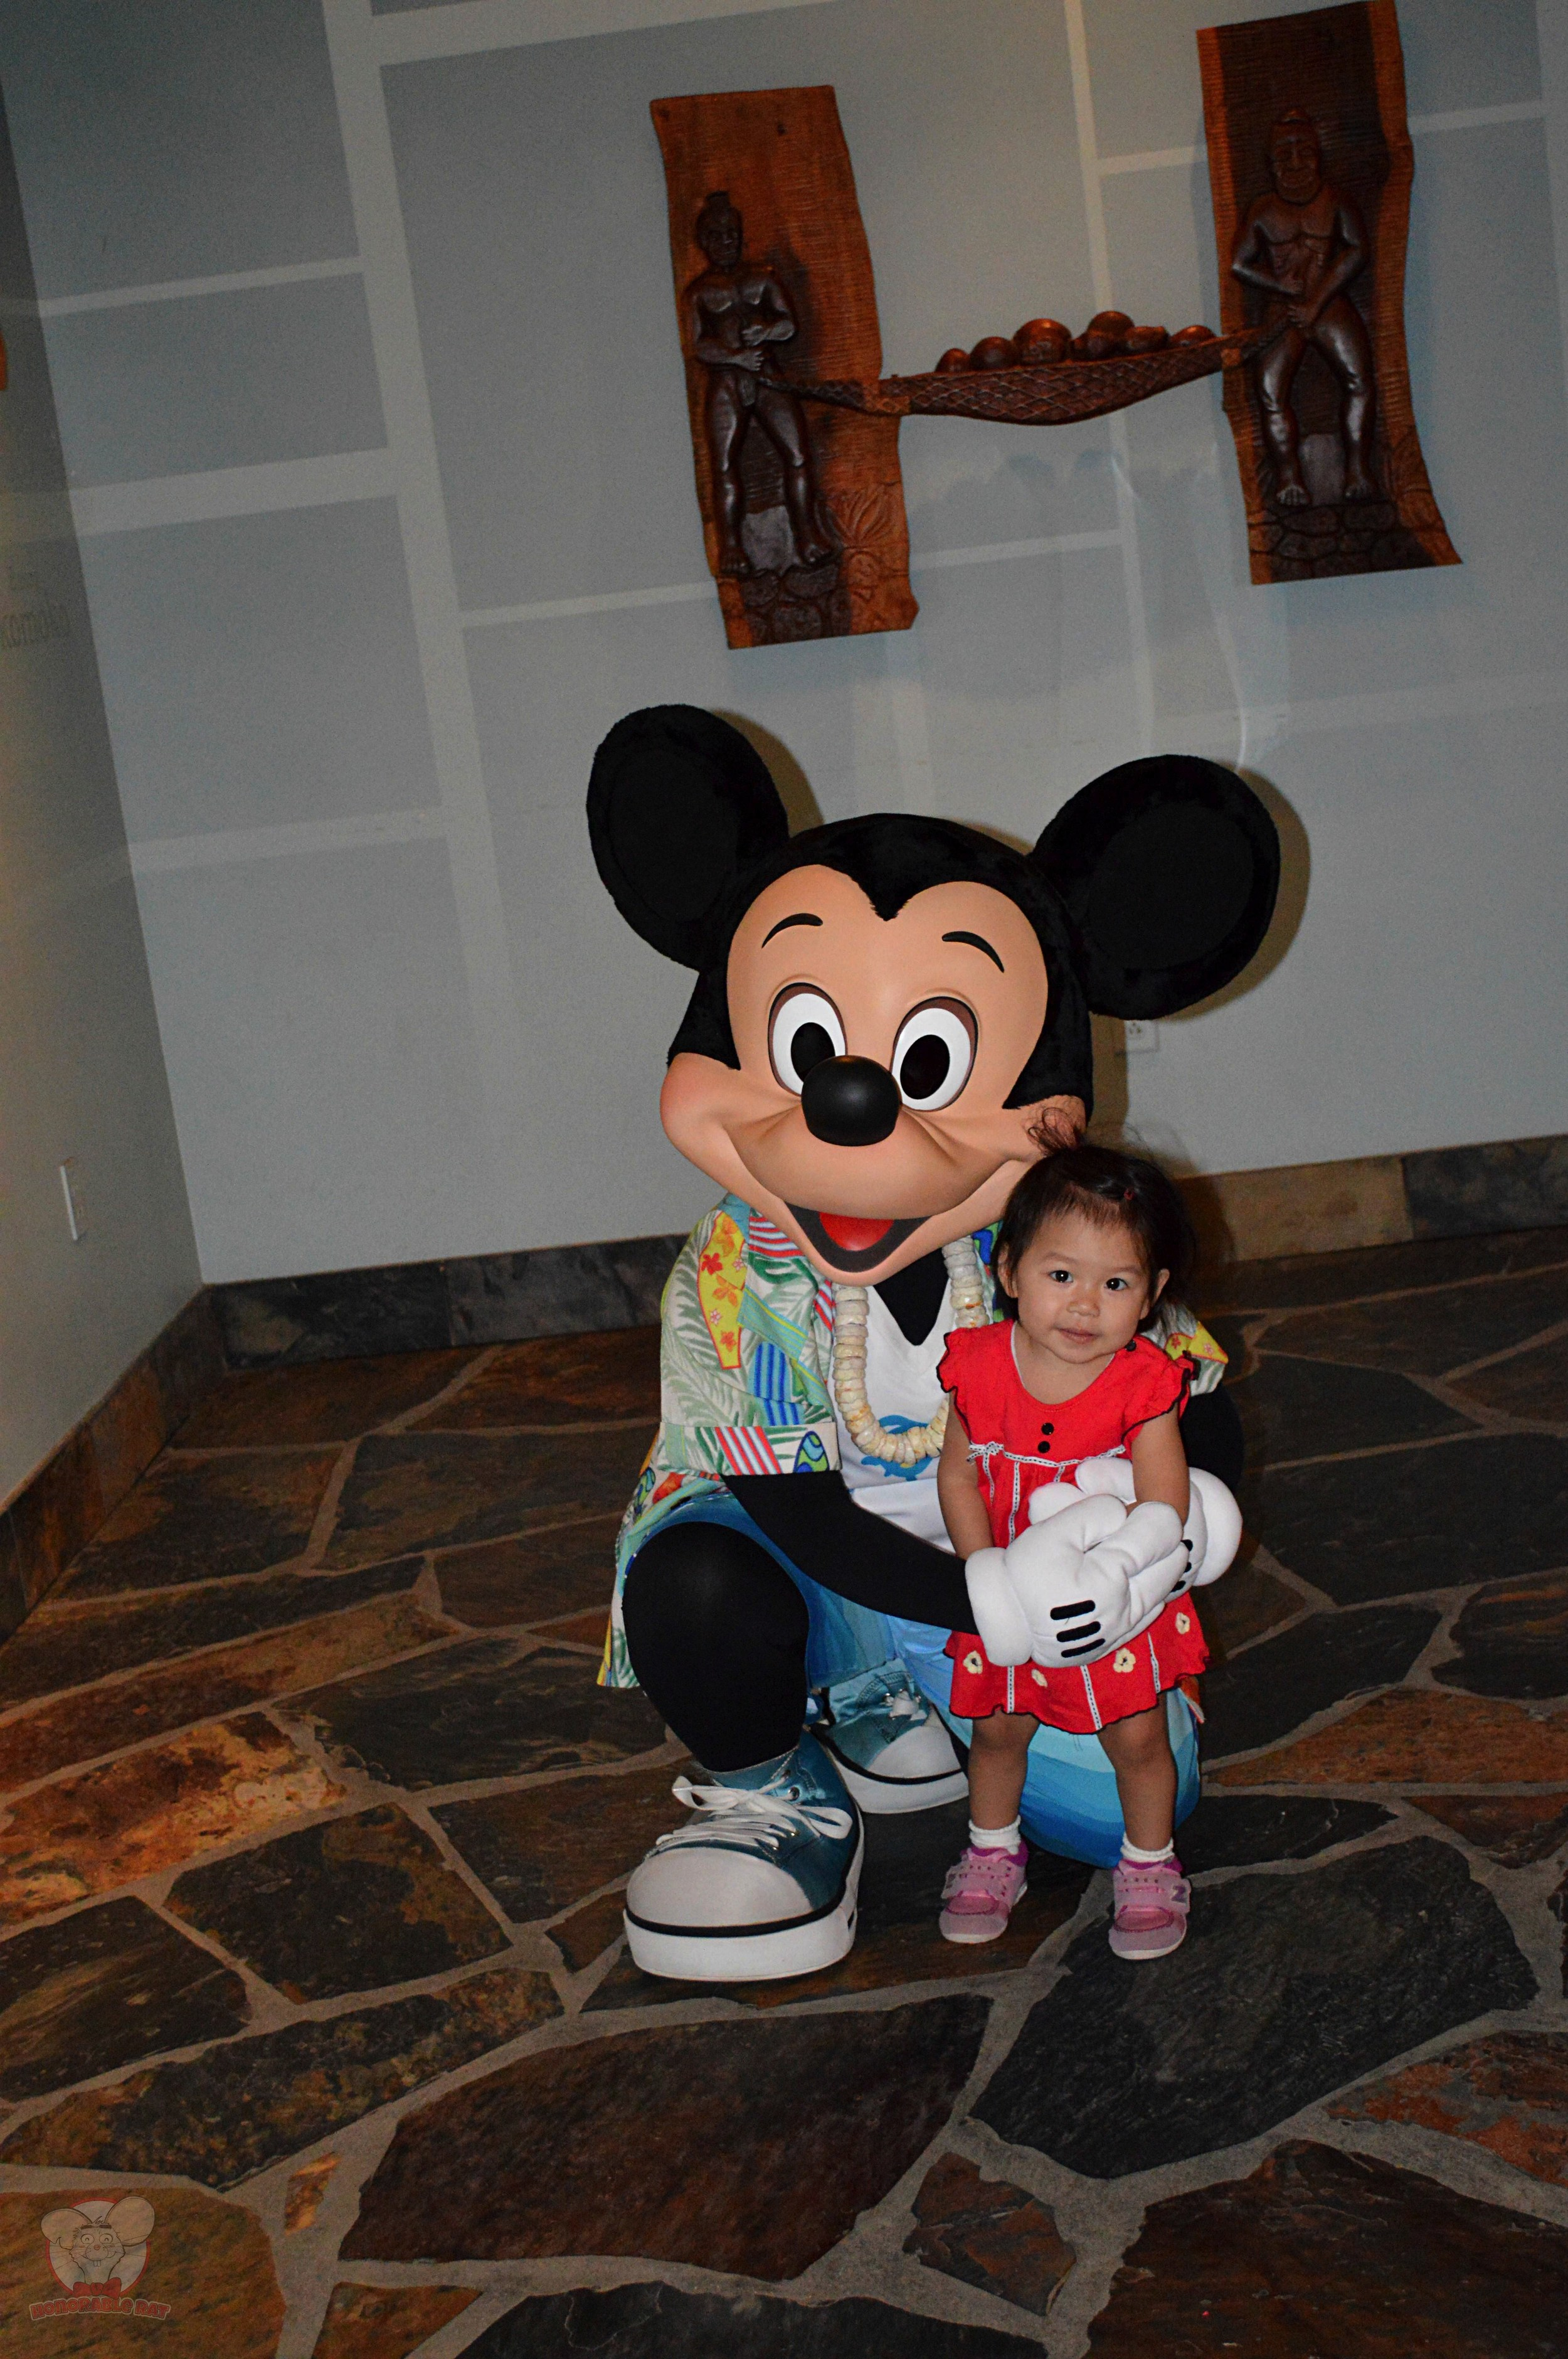 Little Mahina with Mickey by herself